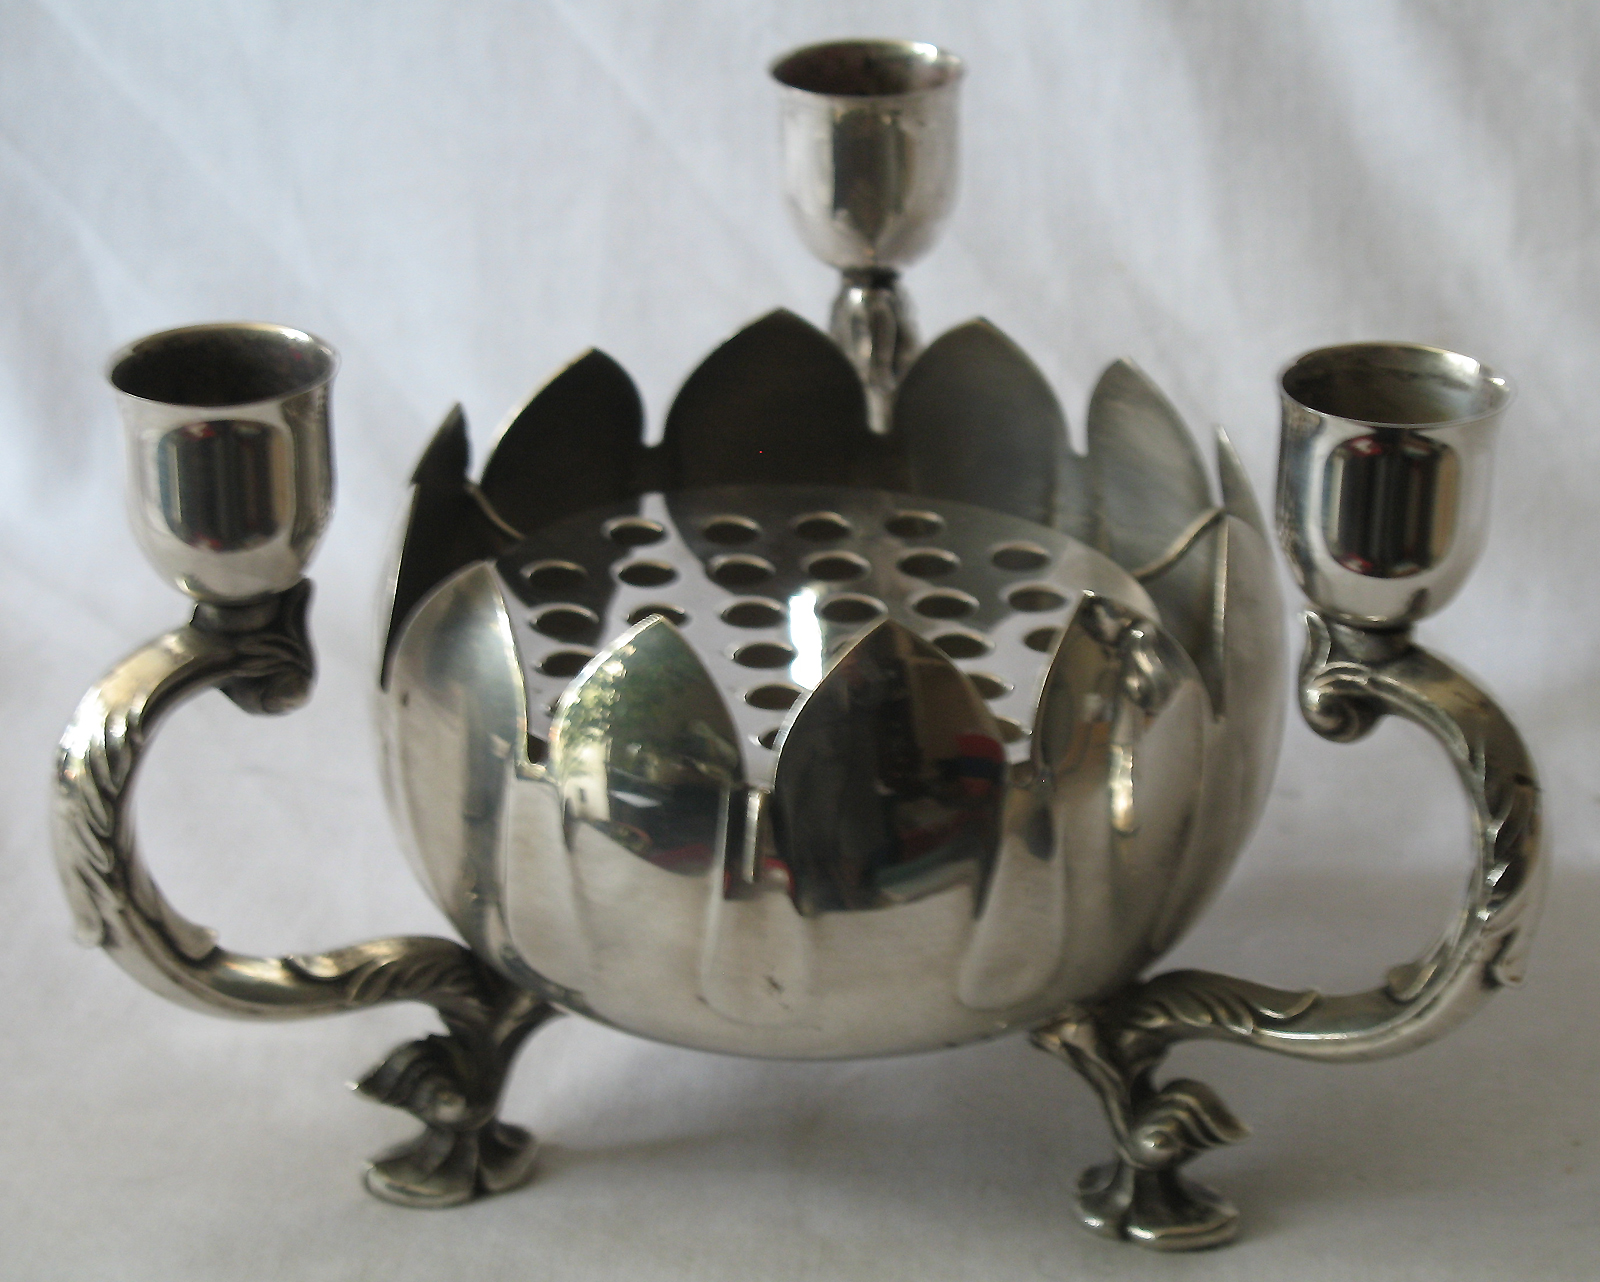 a vintage art deco silver plate centre piece in the shape of a flower having 3x candle holders. Black Bedroom Furniture Sets. Home Design Ideas